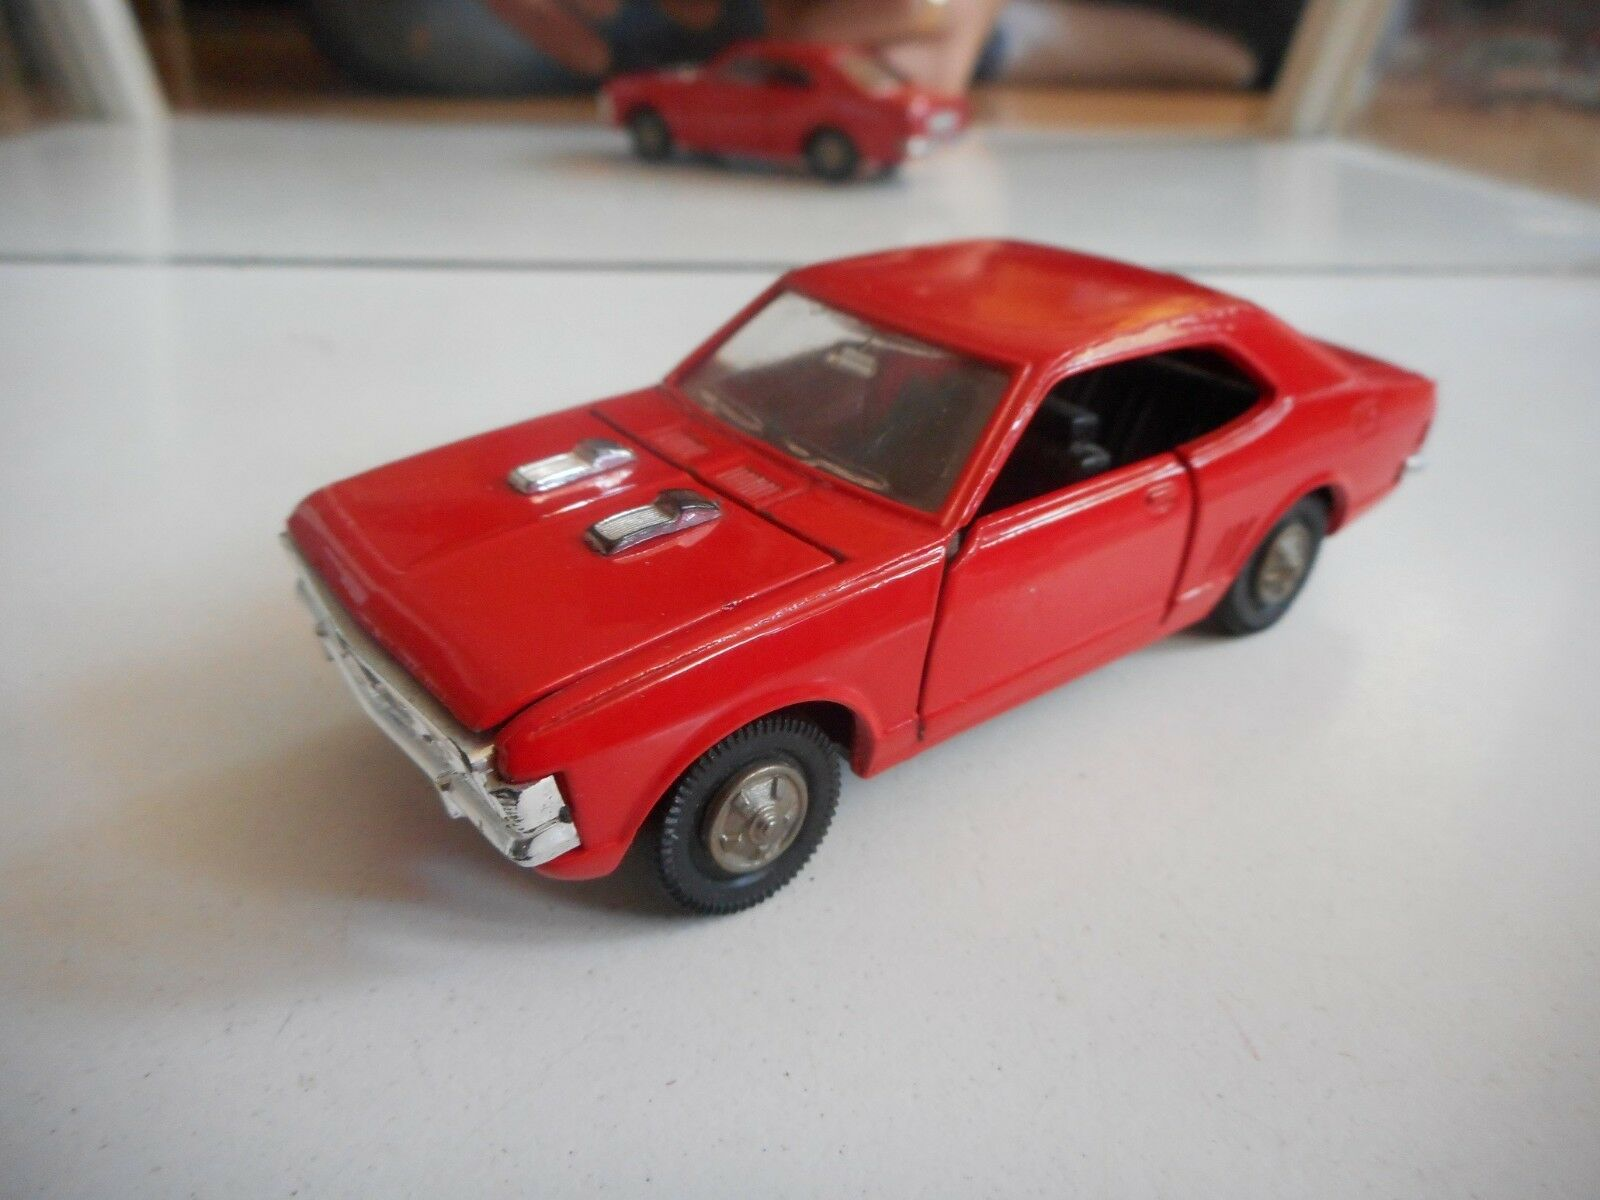 Yonezawa Toys Diapet Mitsubishi Galant Hardtop + Hood scoops in rojo on 1 40